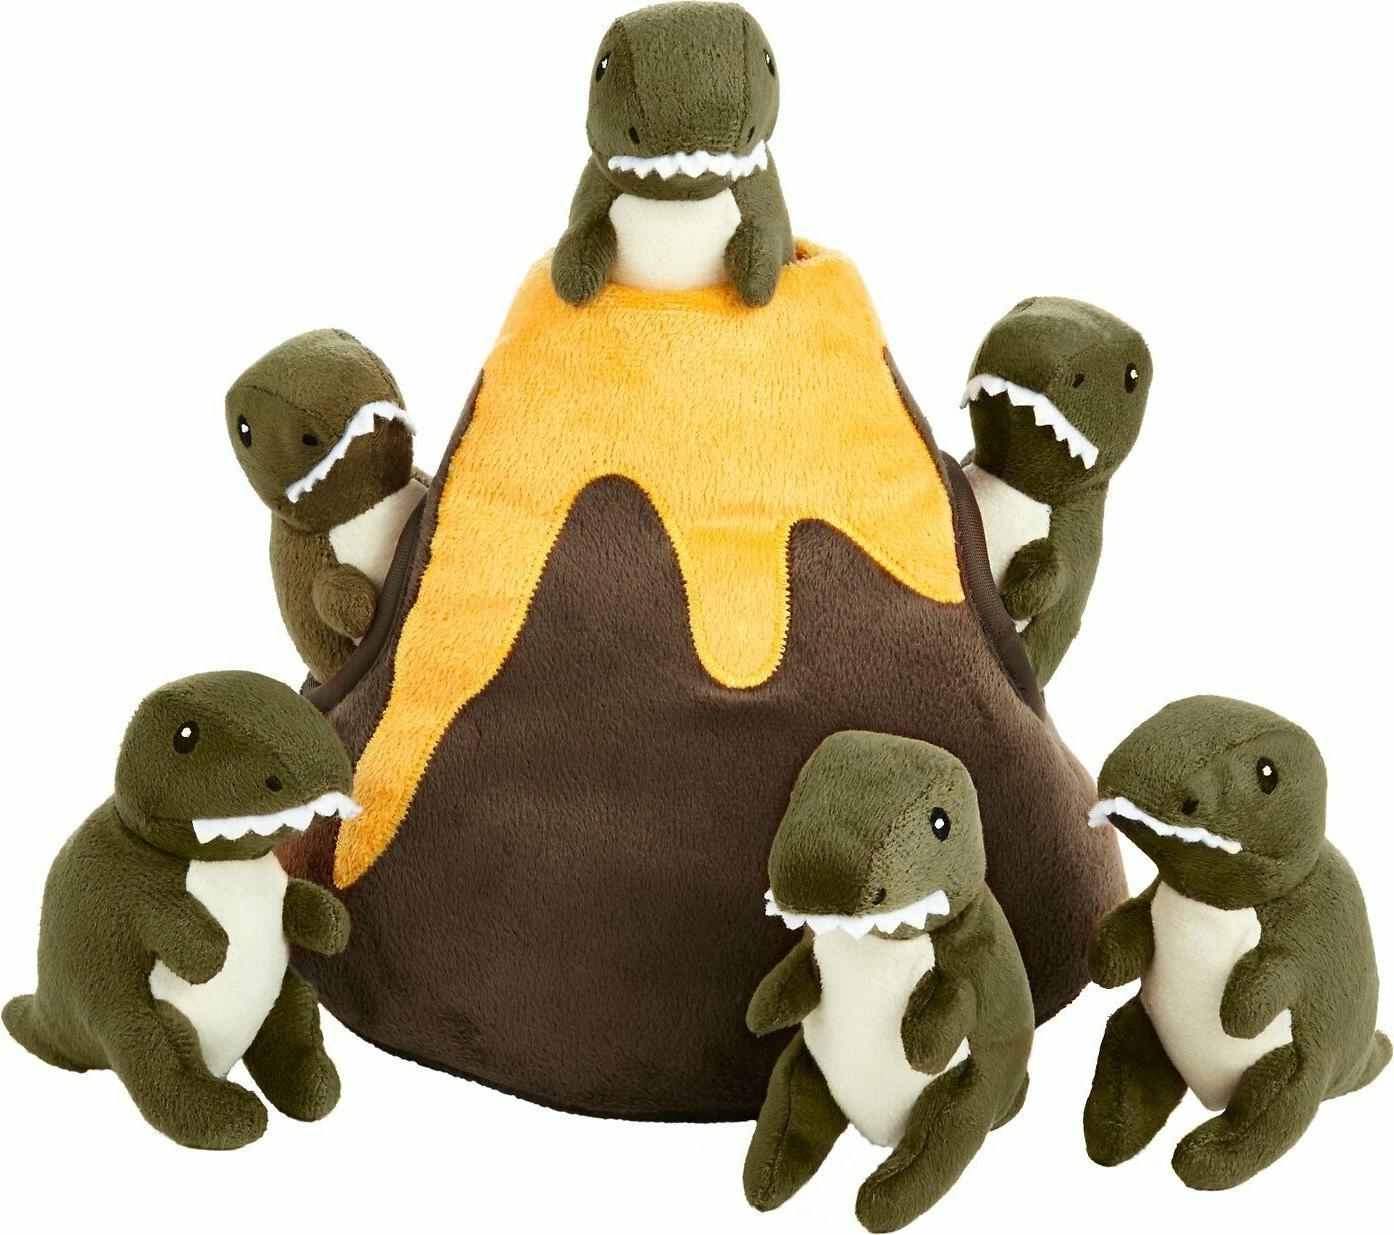 hide and seek plush volcano puzzle dog